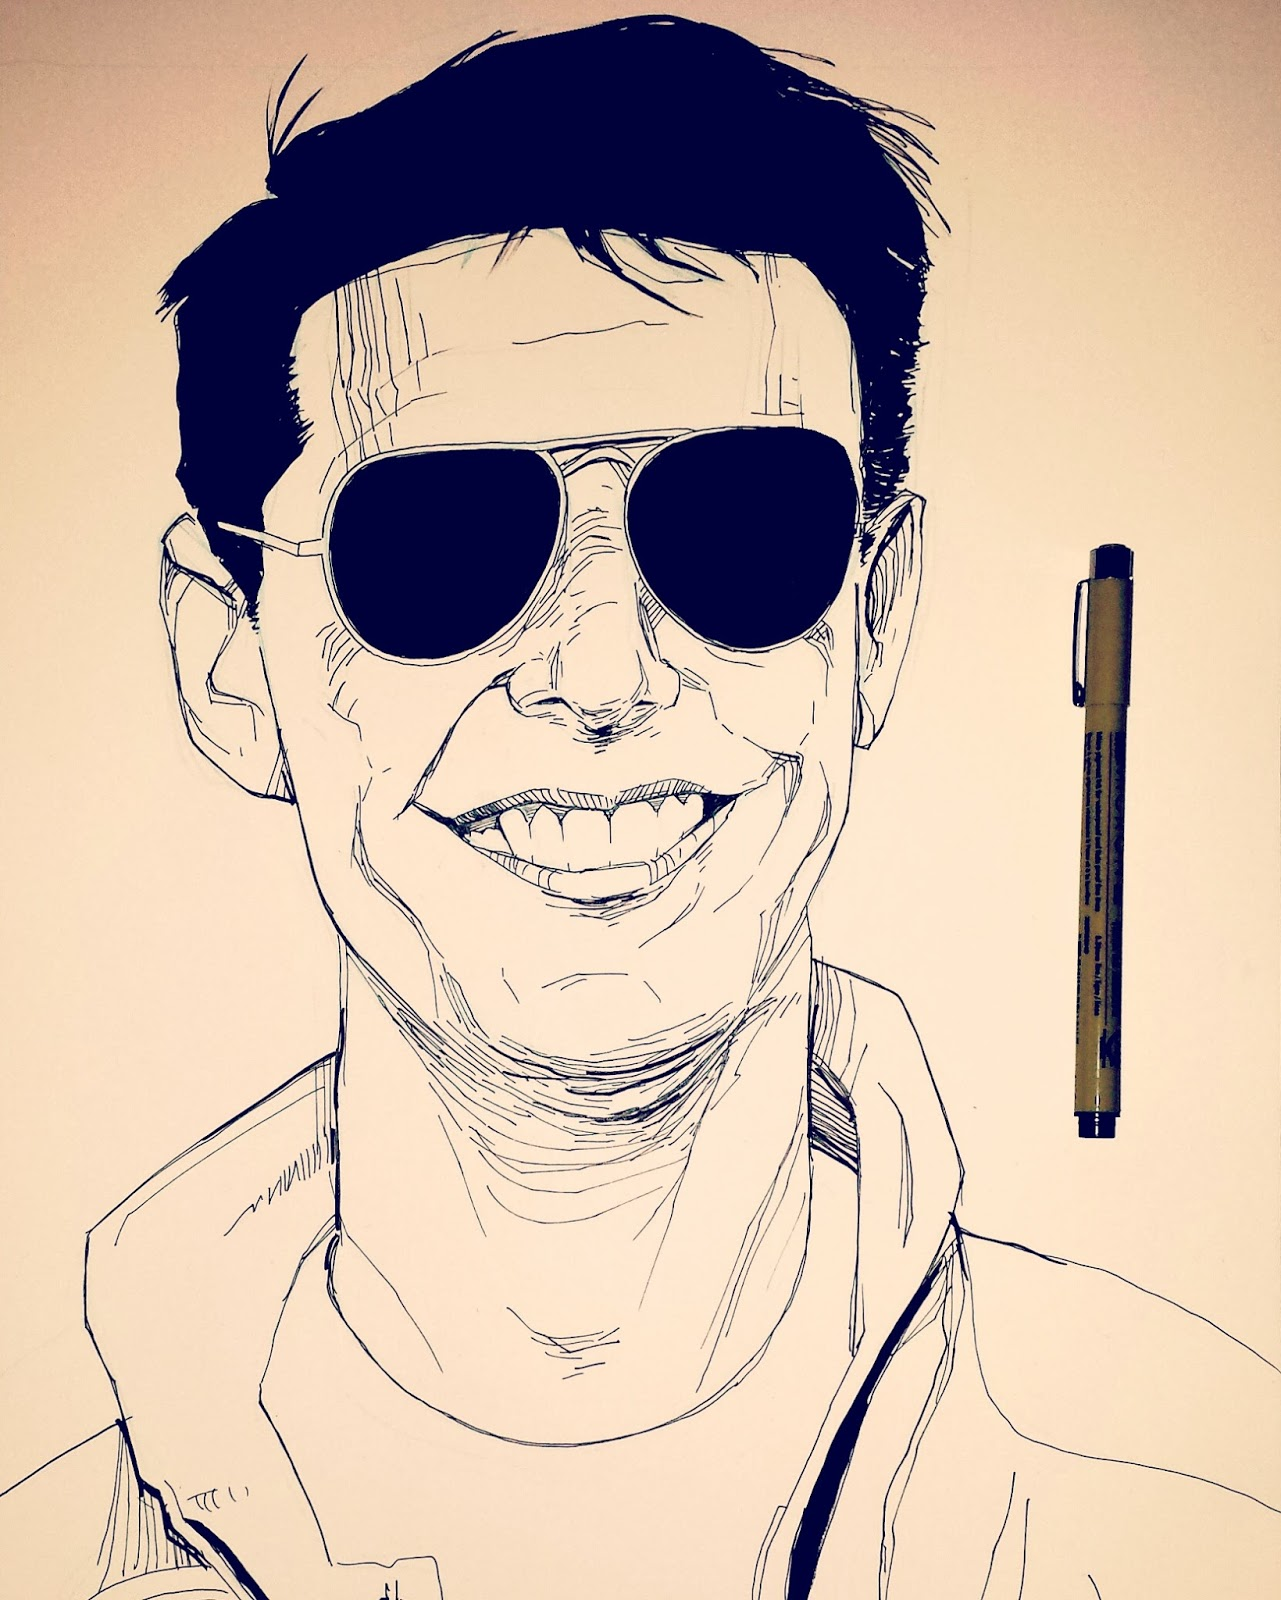 Tom Cruise smiling drawing Top Gun